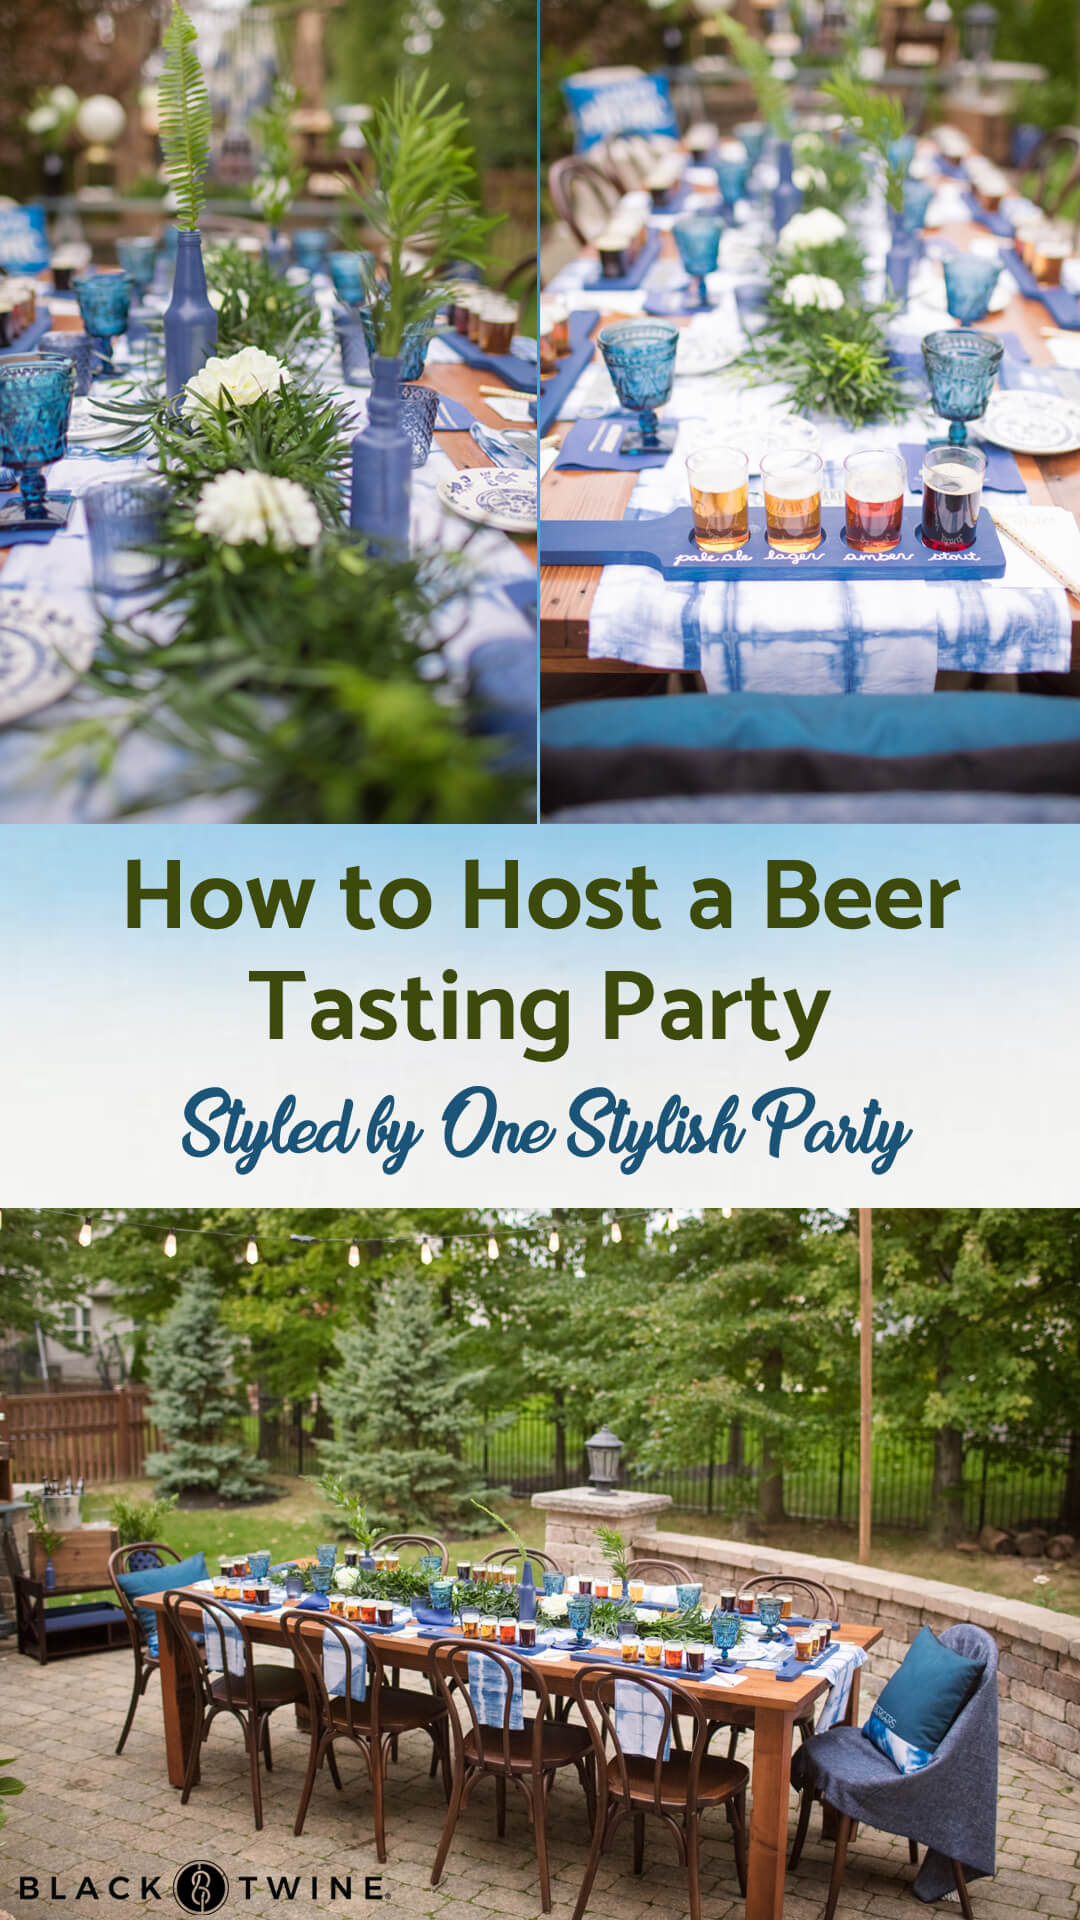 Photos from Beer Tasting Party styled by One Stylish Party | Black Twine